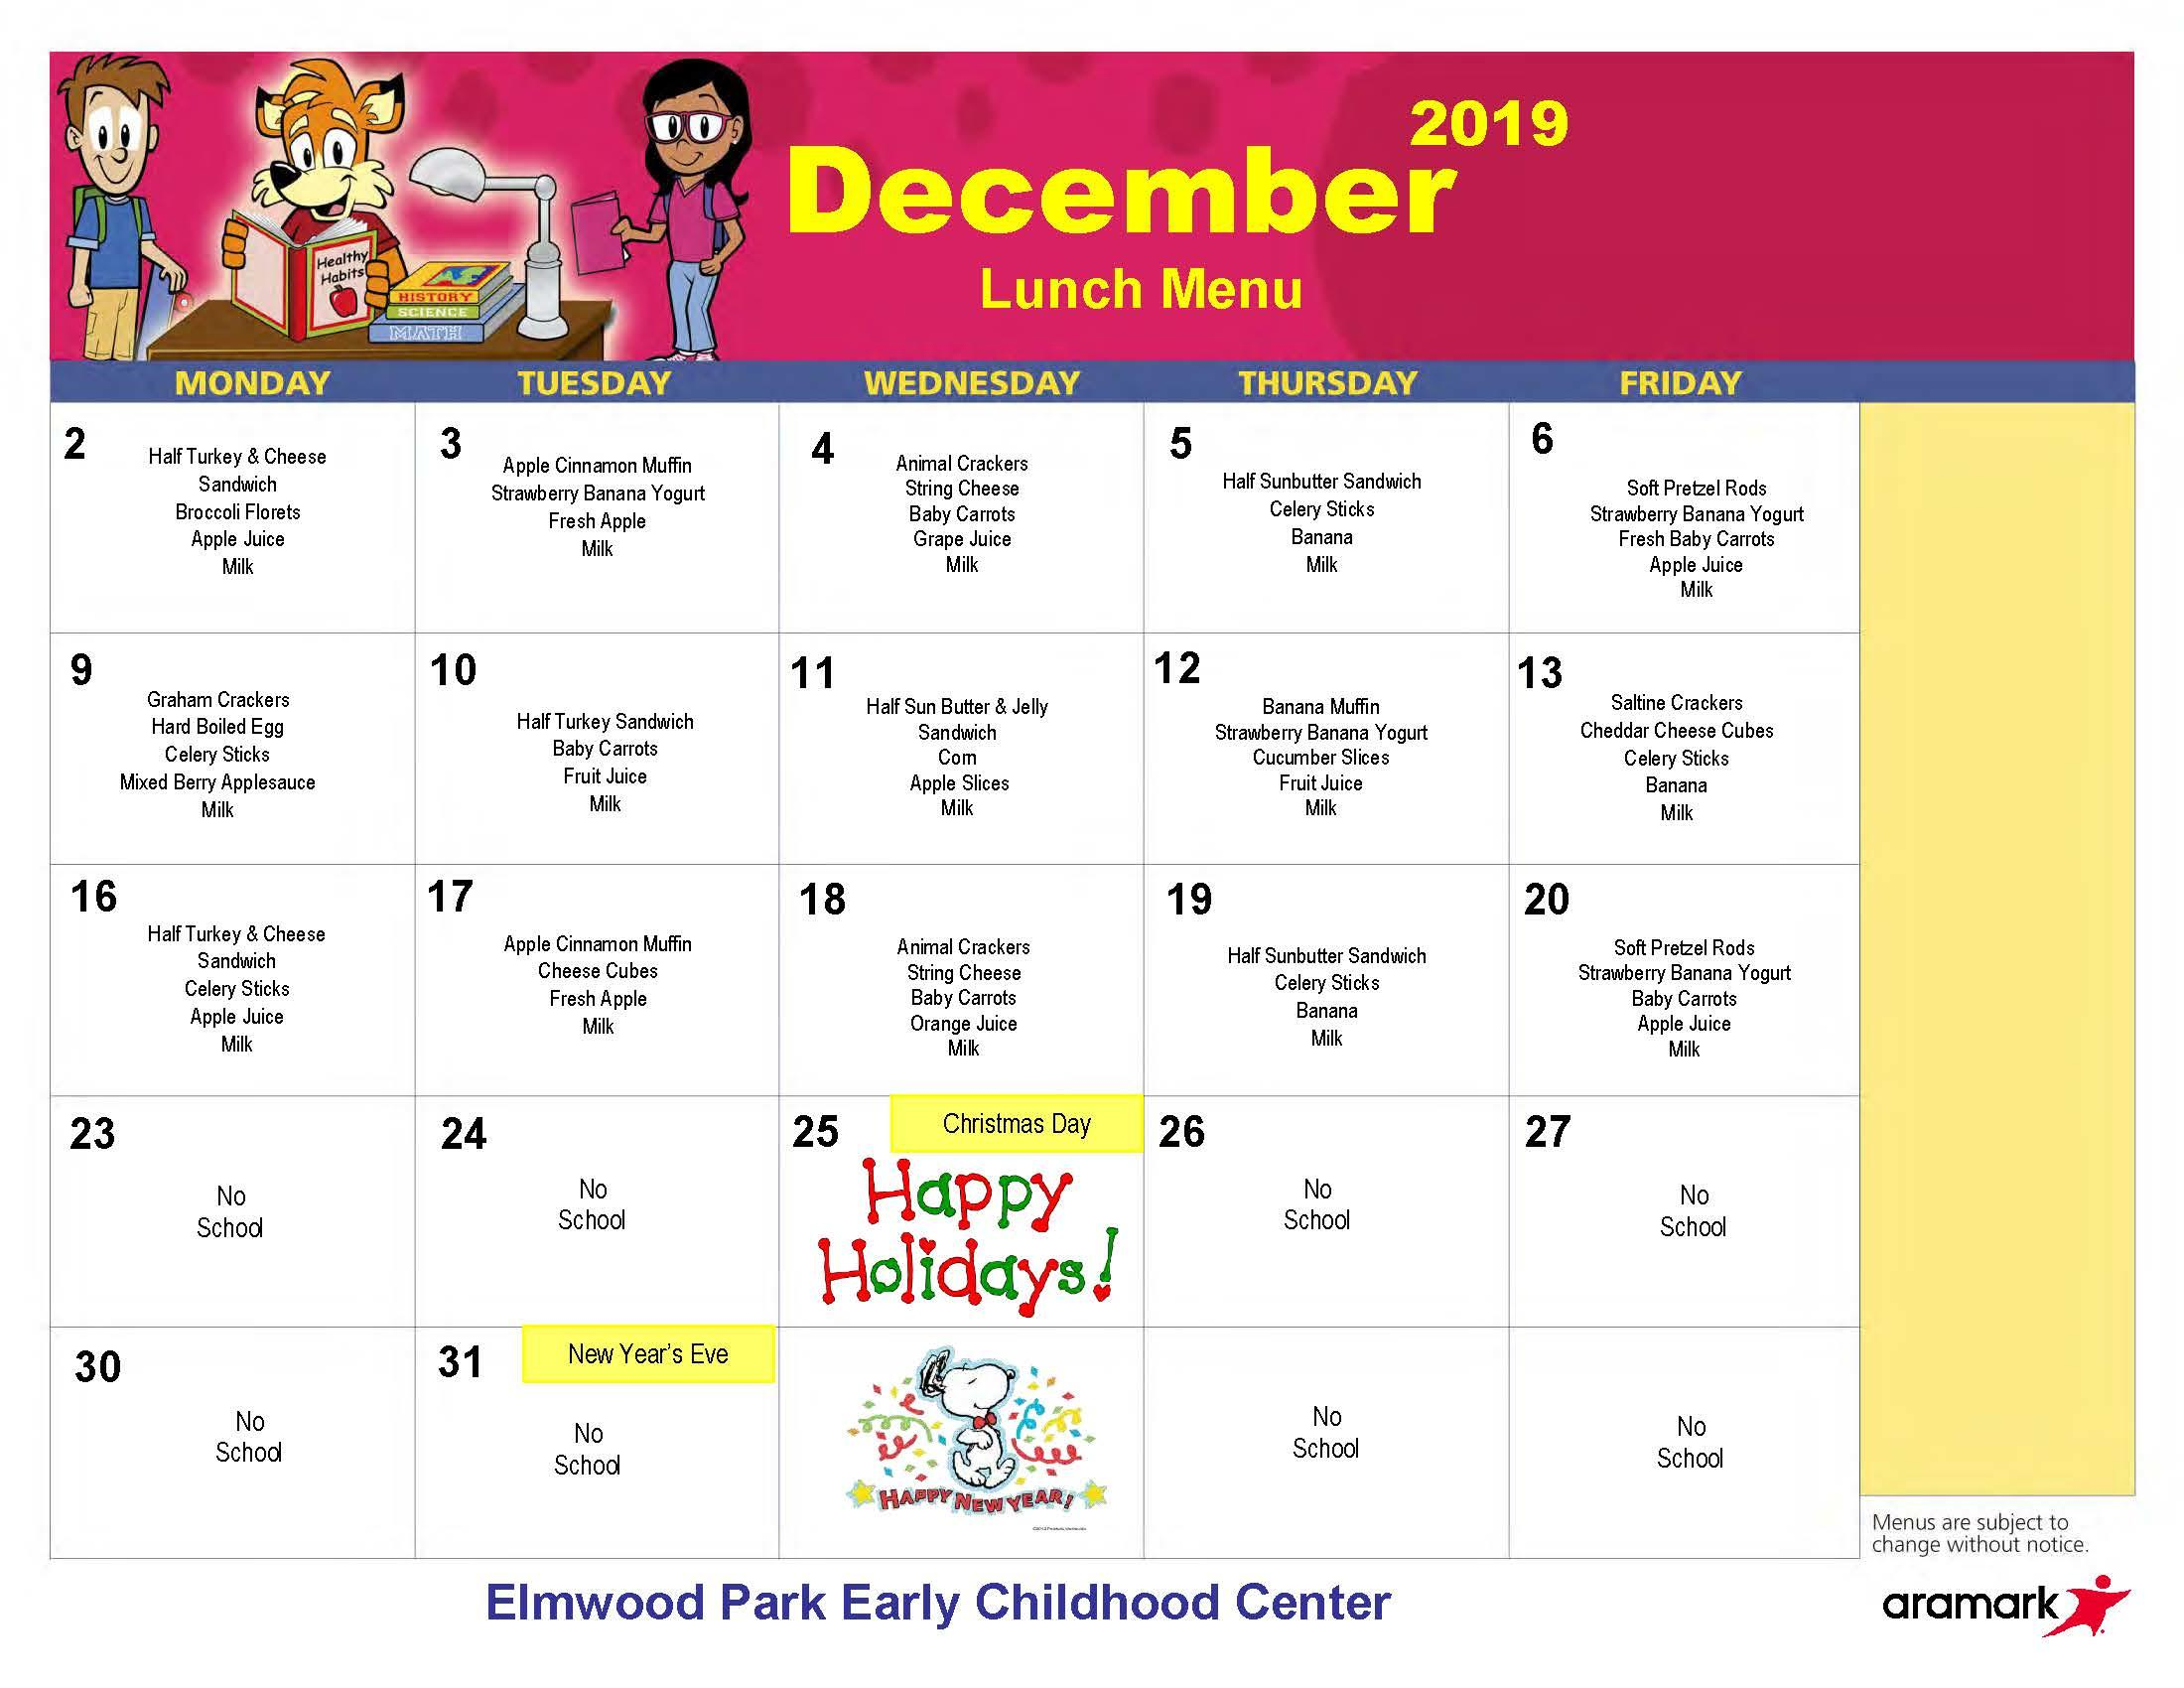 ECC lunch menu, December 2019